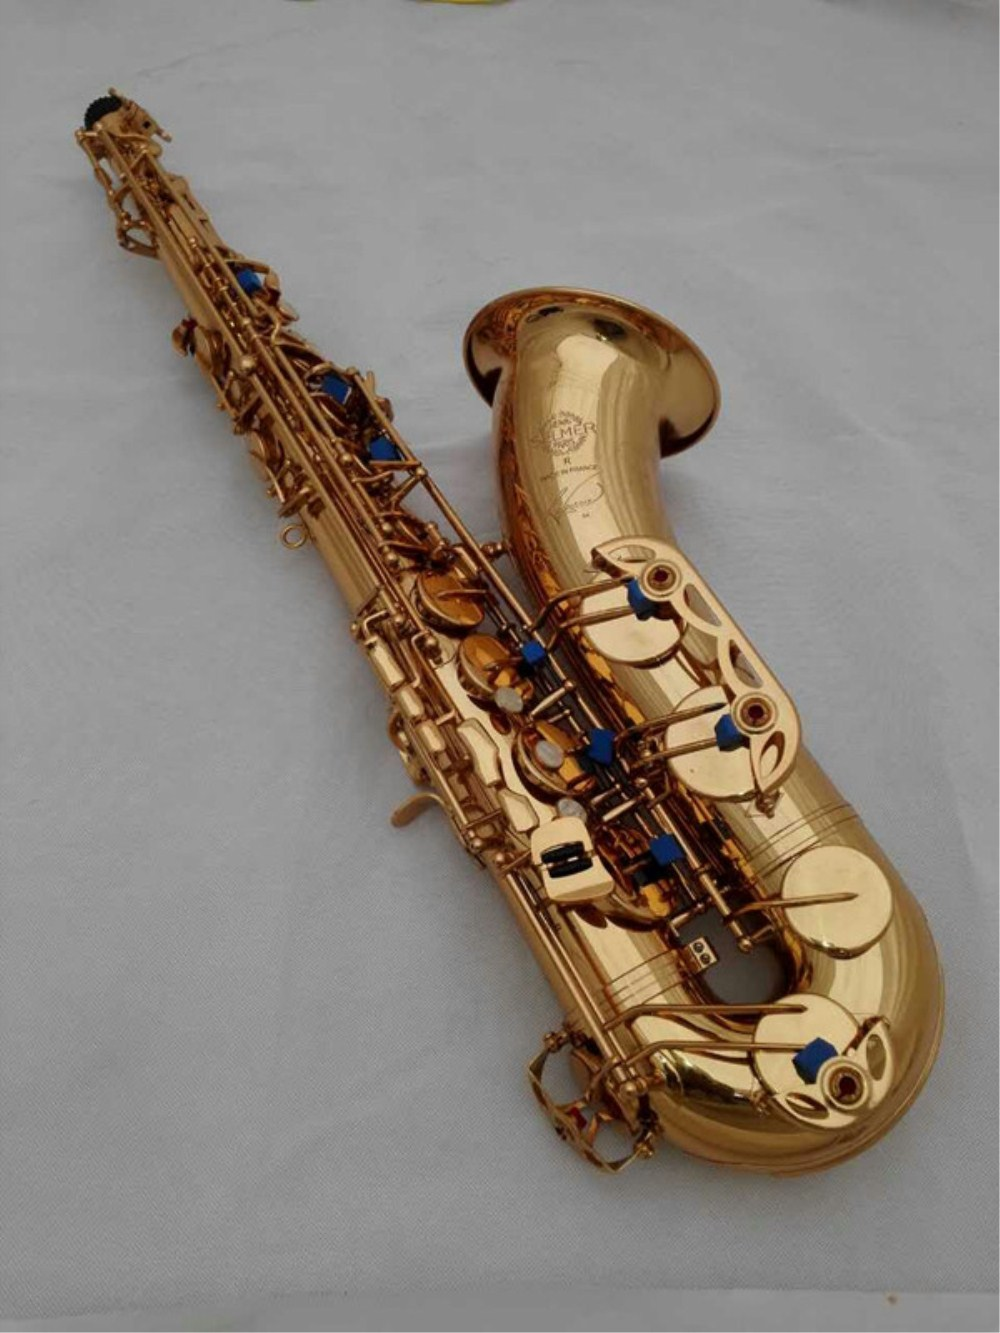 New High quality French Selmer 54 Tenor Saxophone Top Musical Instrument Sax Gold Tenor saxophone Professional selmer of france b flat tenor sax instruments shipping professional performance suitable for beginners